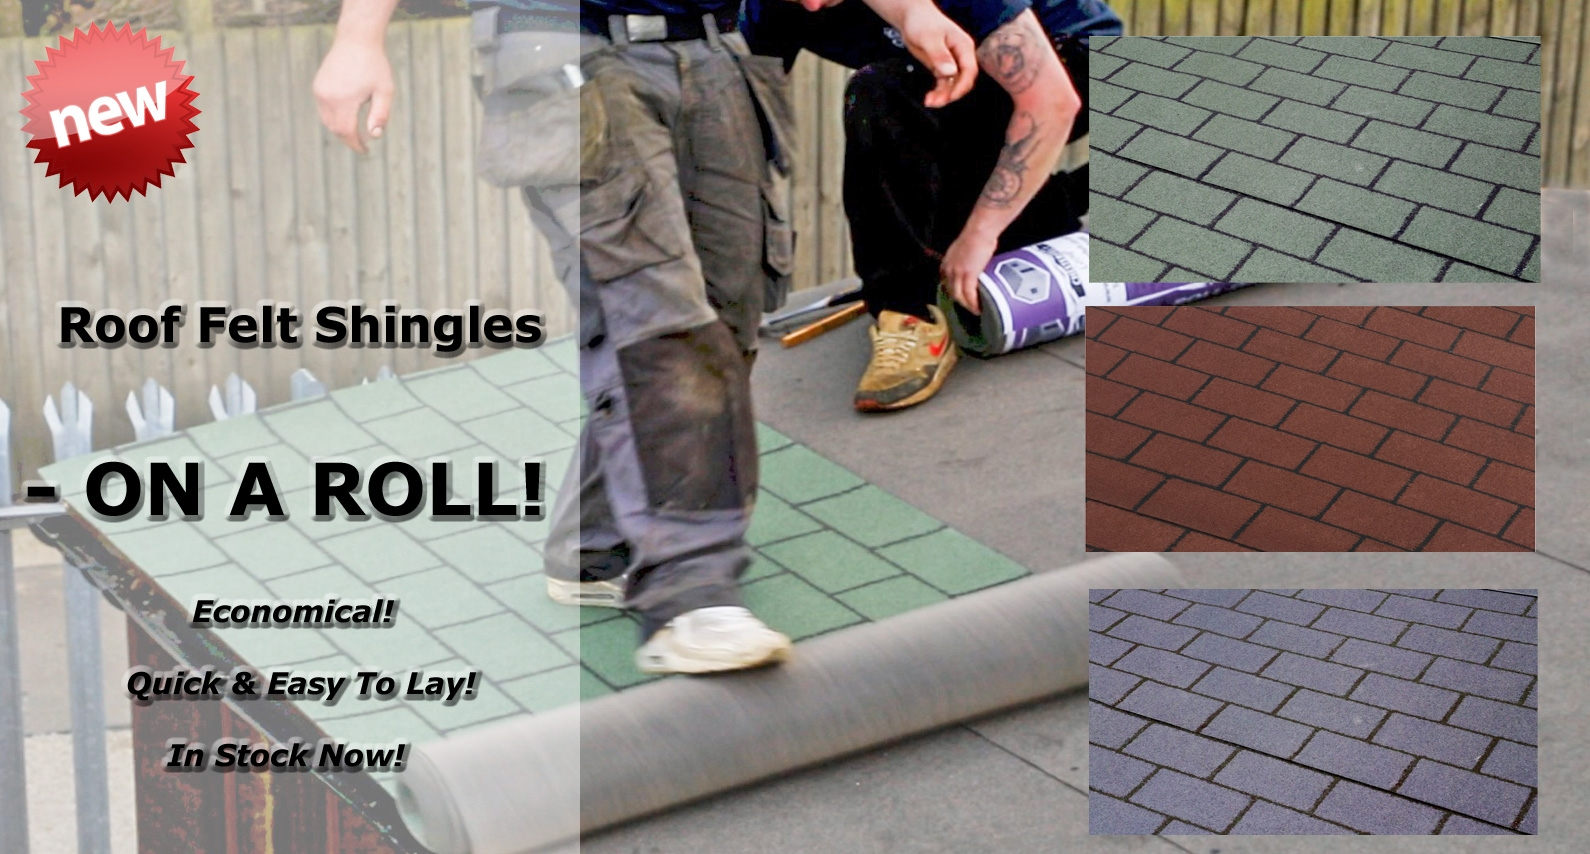 Roll On Felt Shingles at About Roofing Supplies